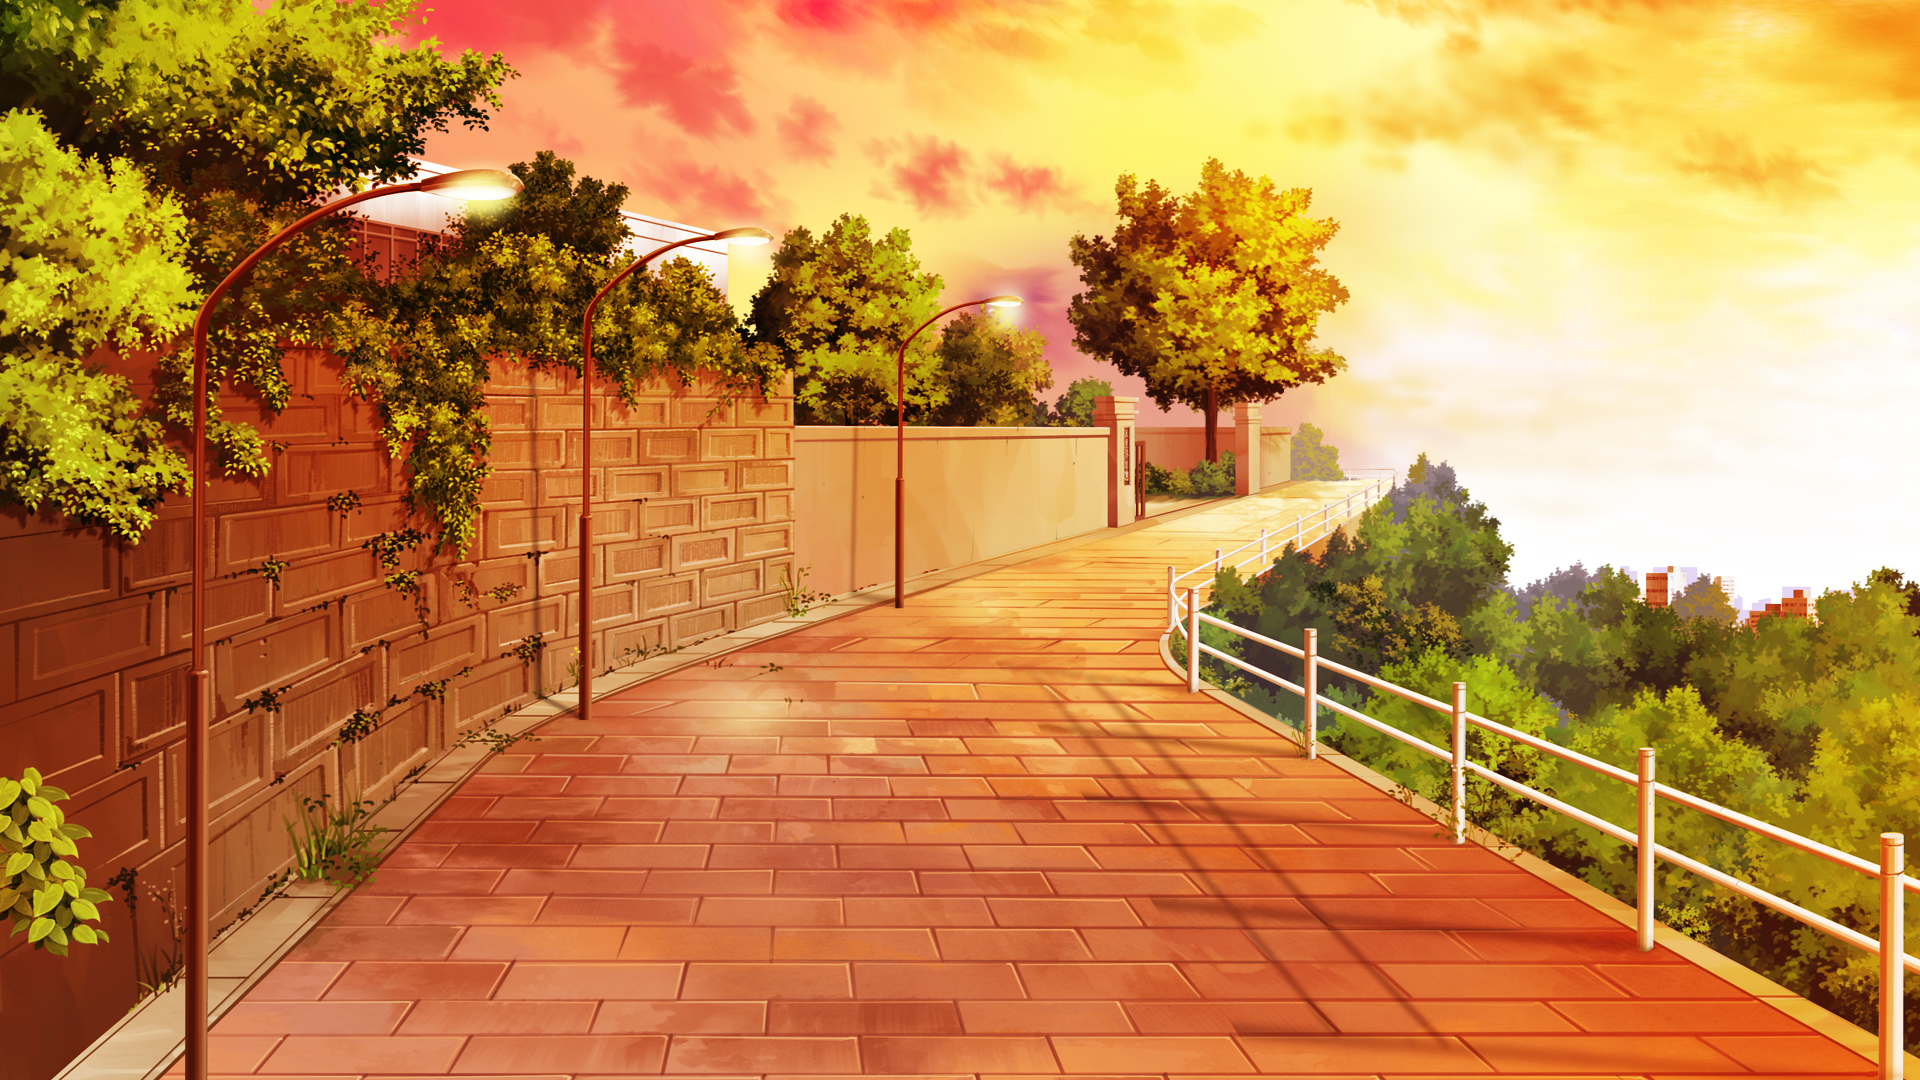 anime city scenery wallpaper widescreen 2 hd wallpapers | screen